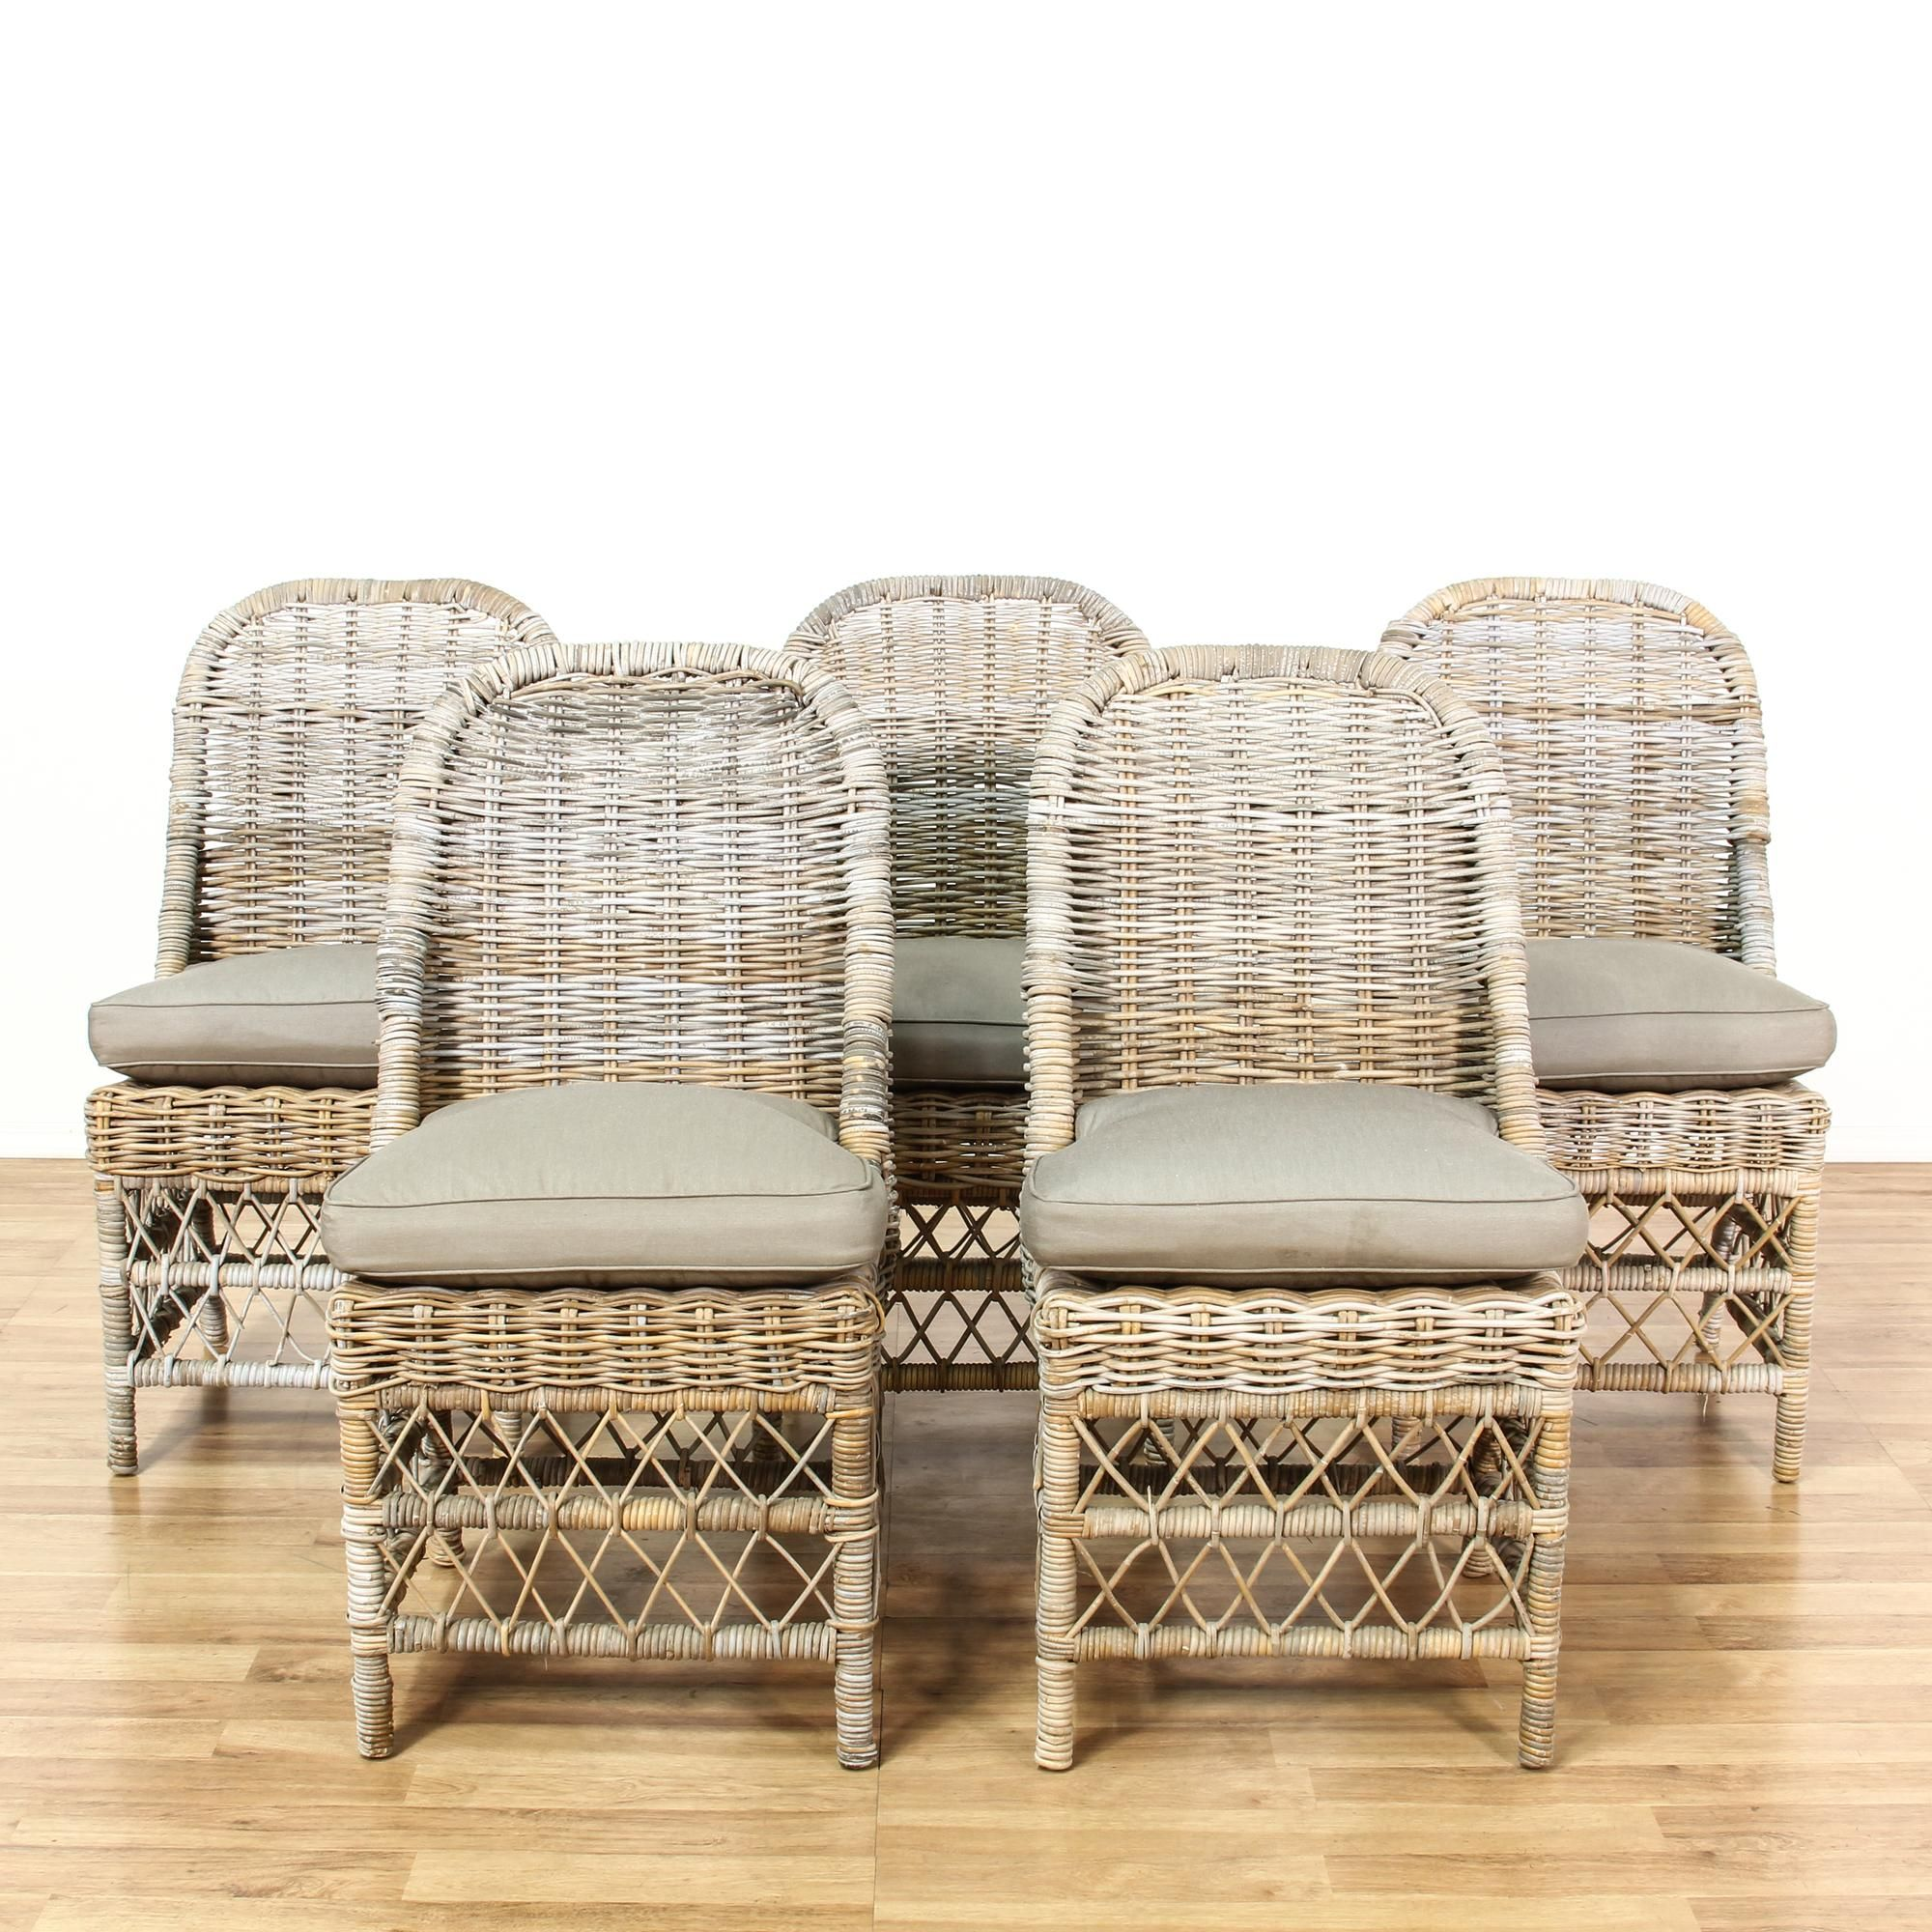 Set of 5 Driftwood Wicker Outdoor Patio Chairs This set of 5